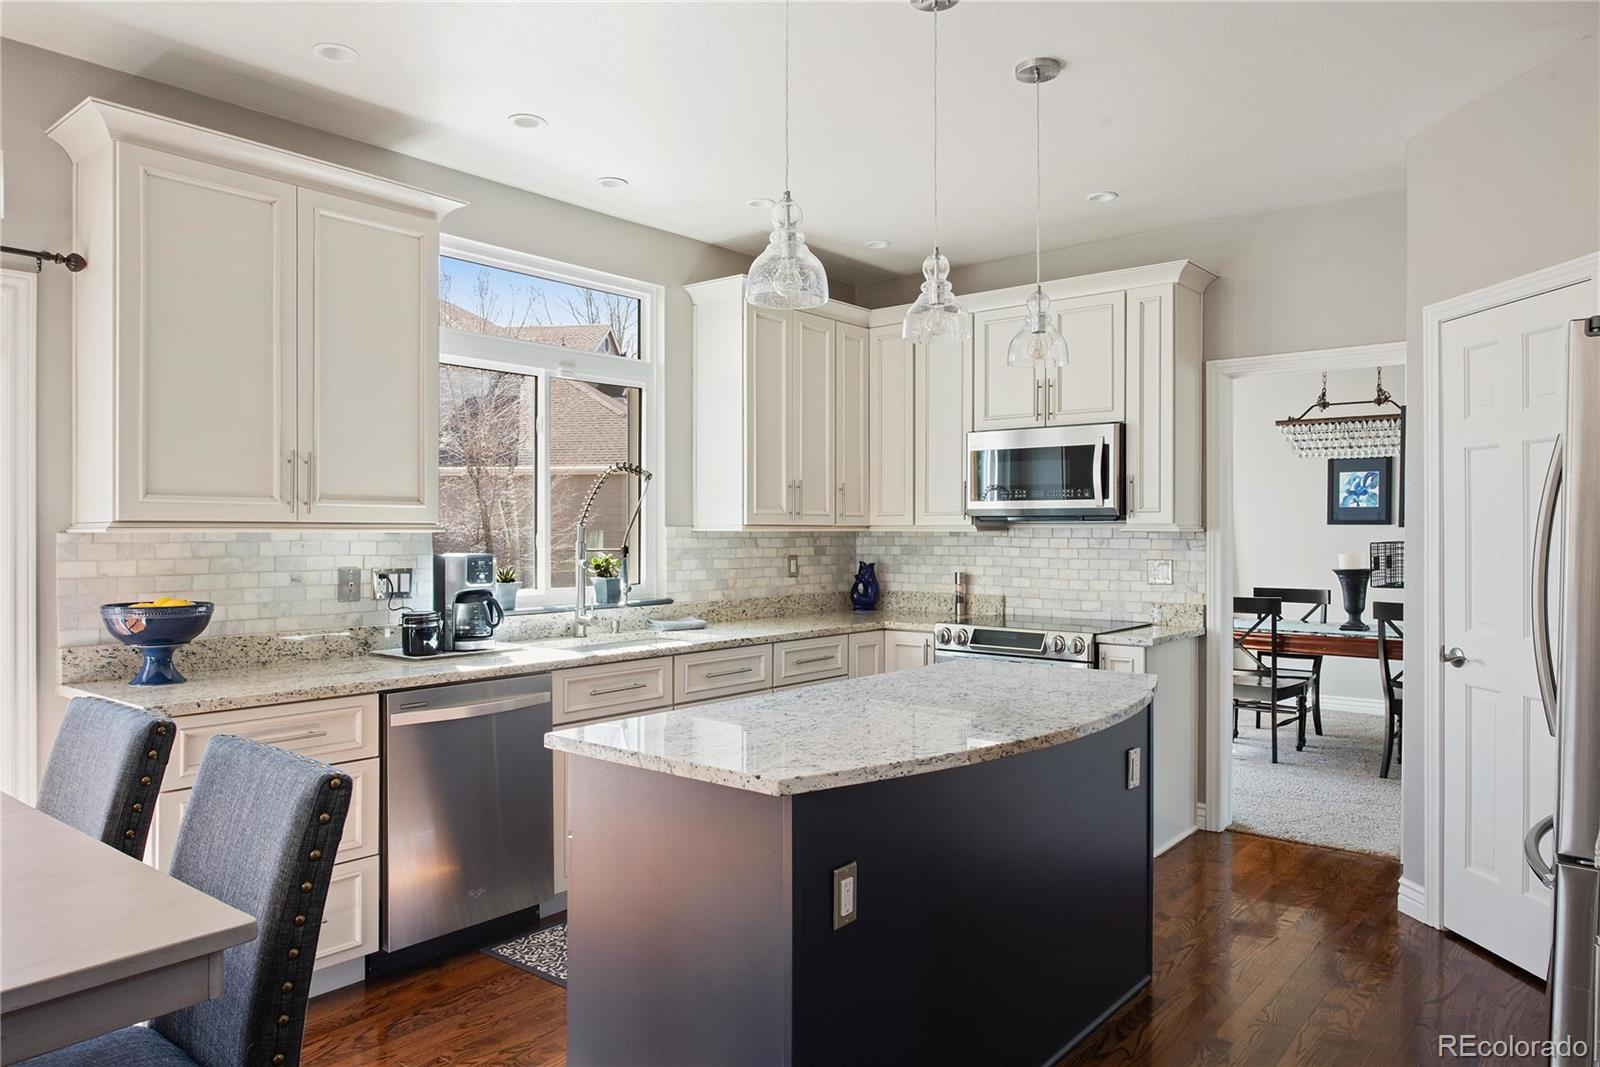 MLS# 7778150 - 6 - 16652 W 55th Place, Golden, CO 80403